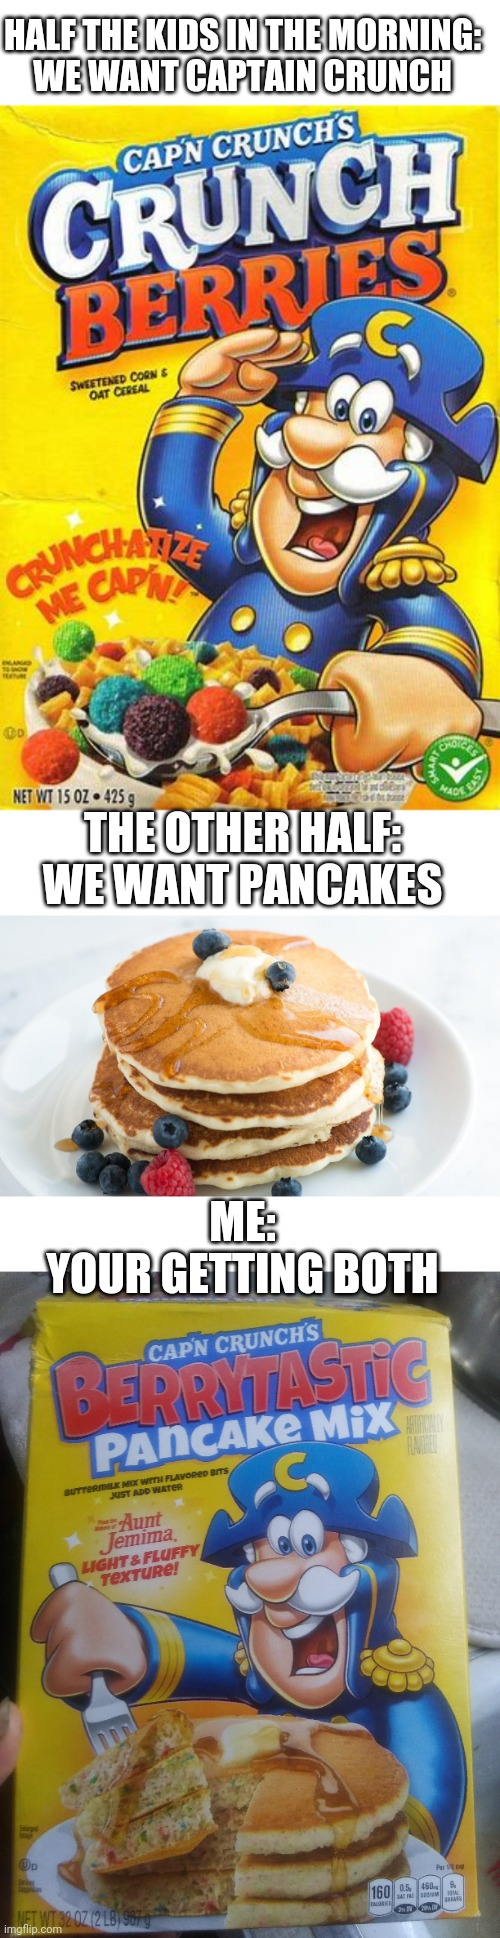 IT'S PRETTY GOOD |  HALF THE KIDS IN THE MORNING: WE WANT CAPTAIN CRUNCH; THE OTHER HALF: WE WANT PANCAKES; ME: YOUR GETTING BOTH | image tagged in memes,captain crunch cereal,pancakes,strawberries,kids | made w/ Imgflip meme maker